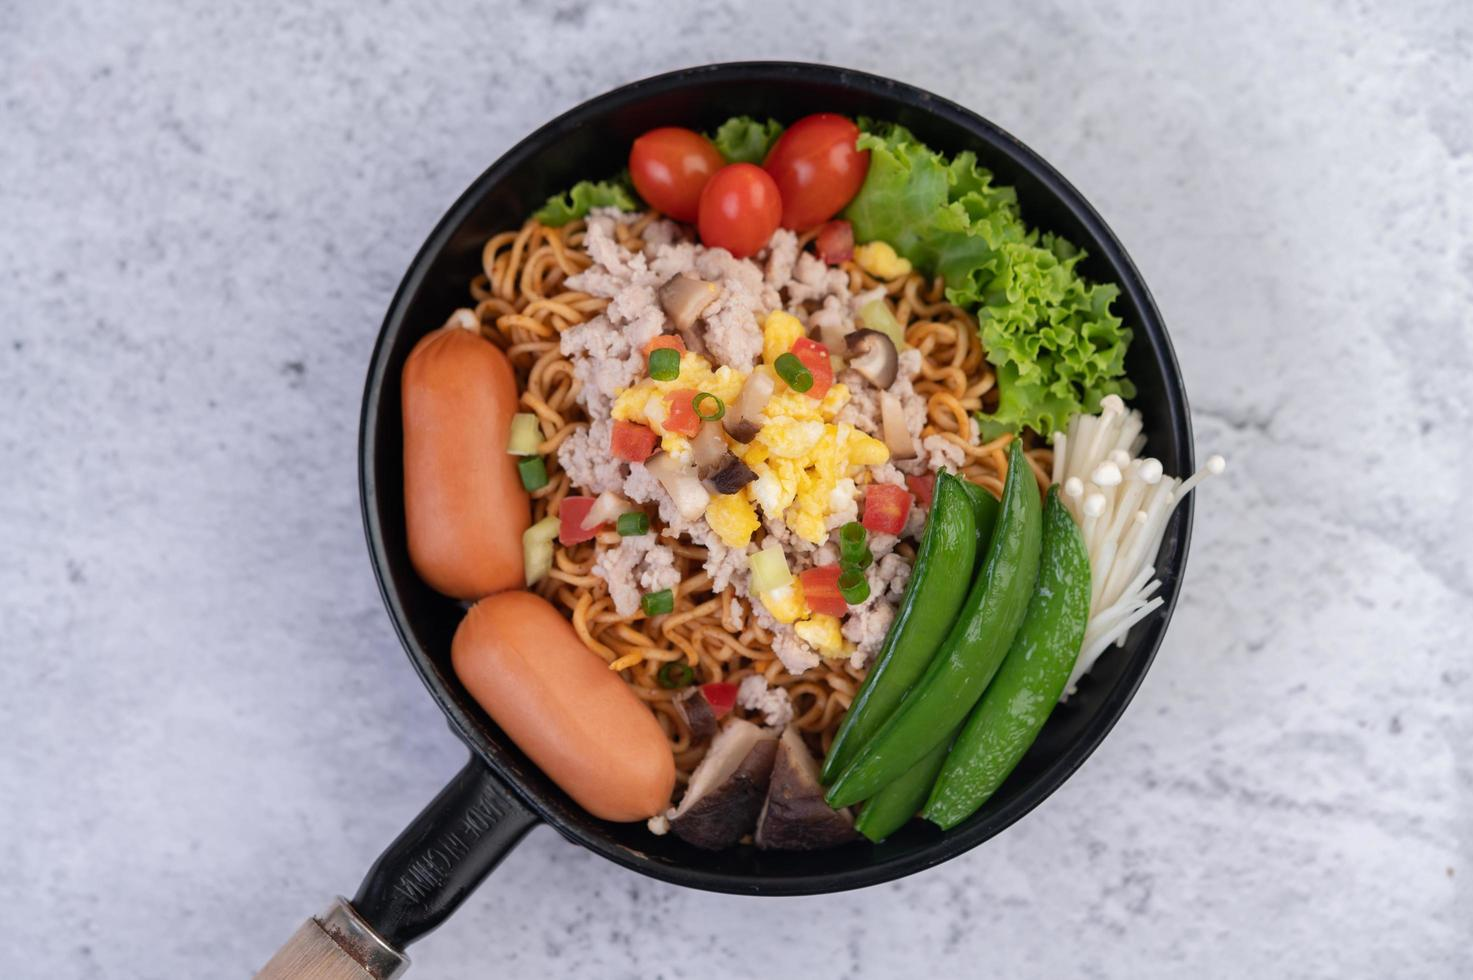 Stir-fried noodles with minced pork, edamame, tomatoes and mushrooms photo